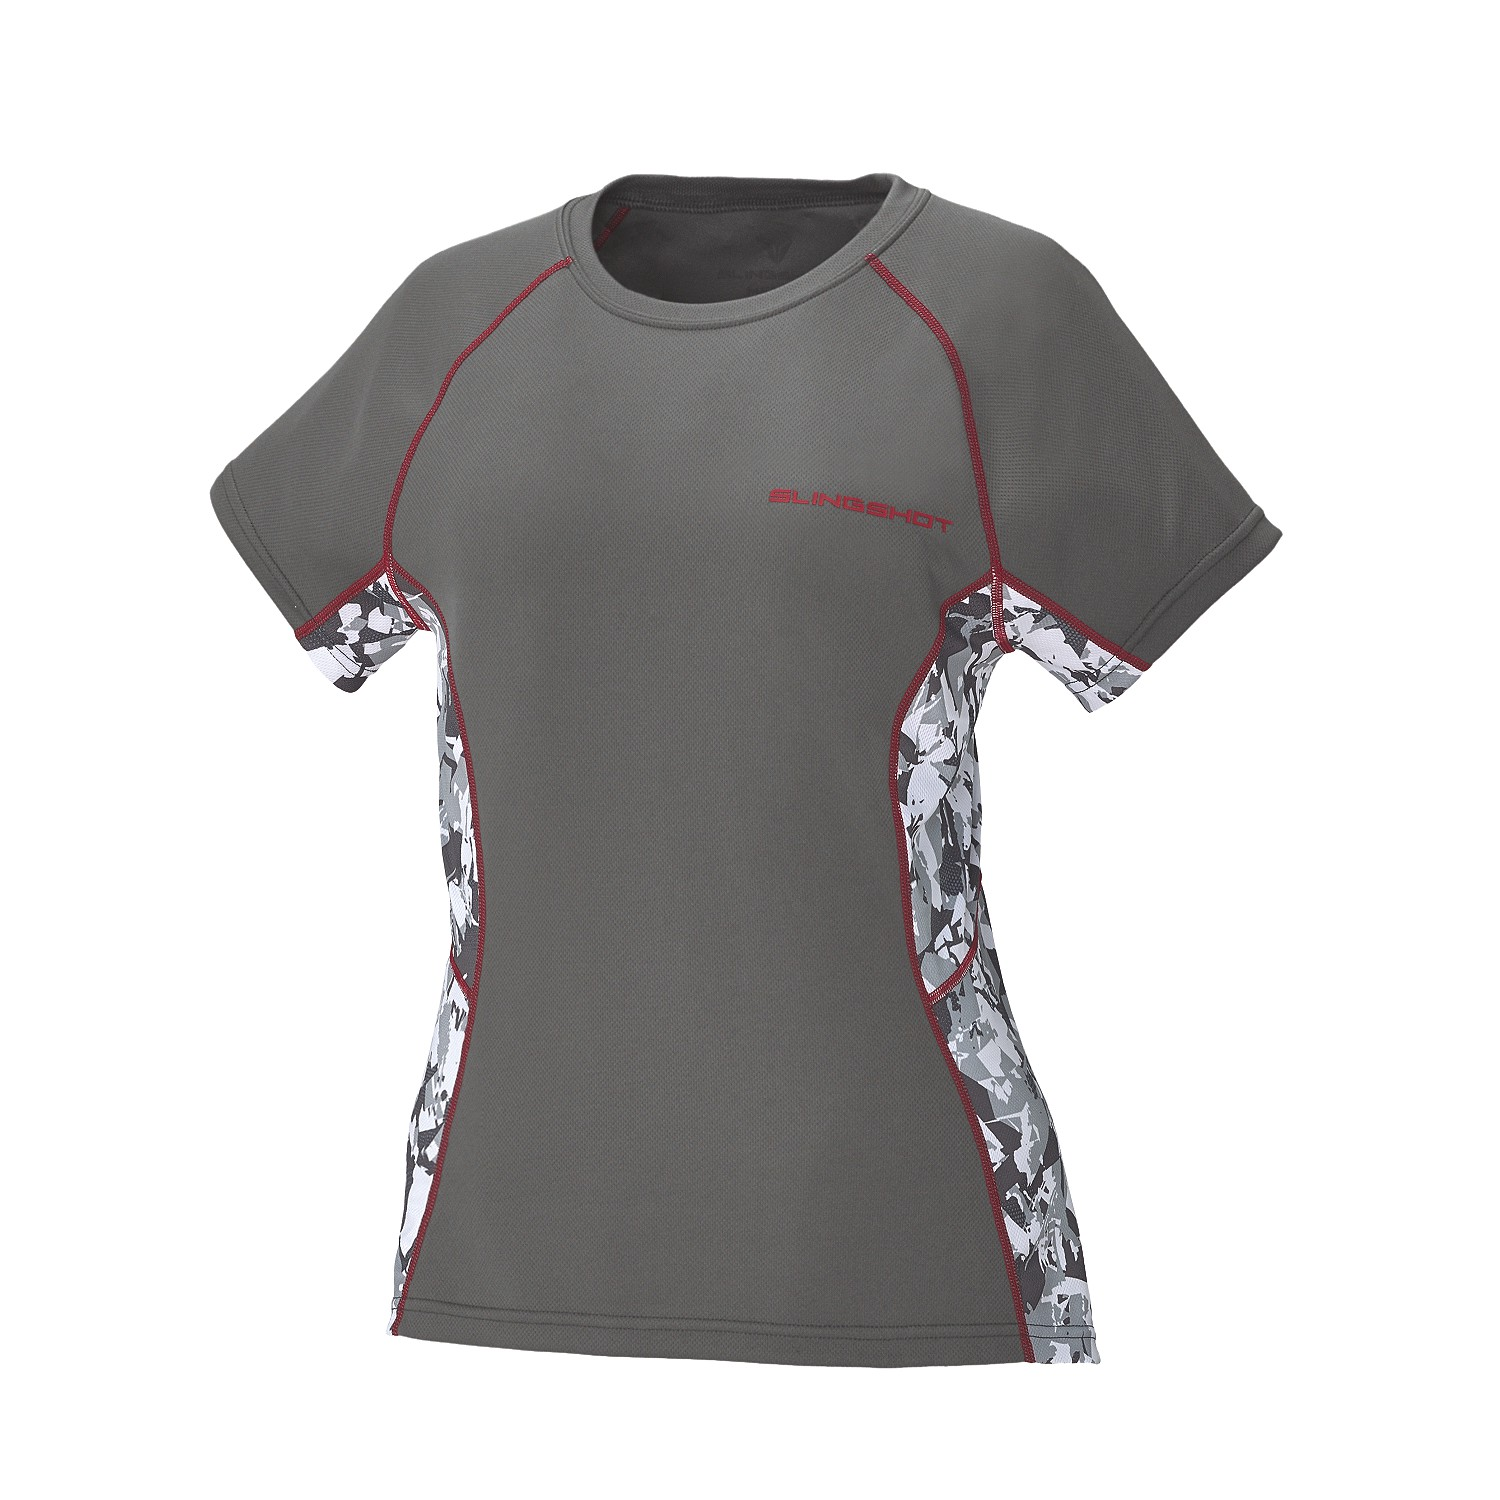 Women's Short-Sleeve Cooling Shirt with Slingshot Logo